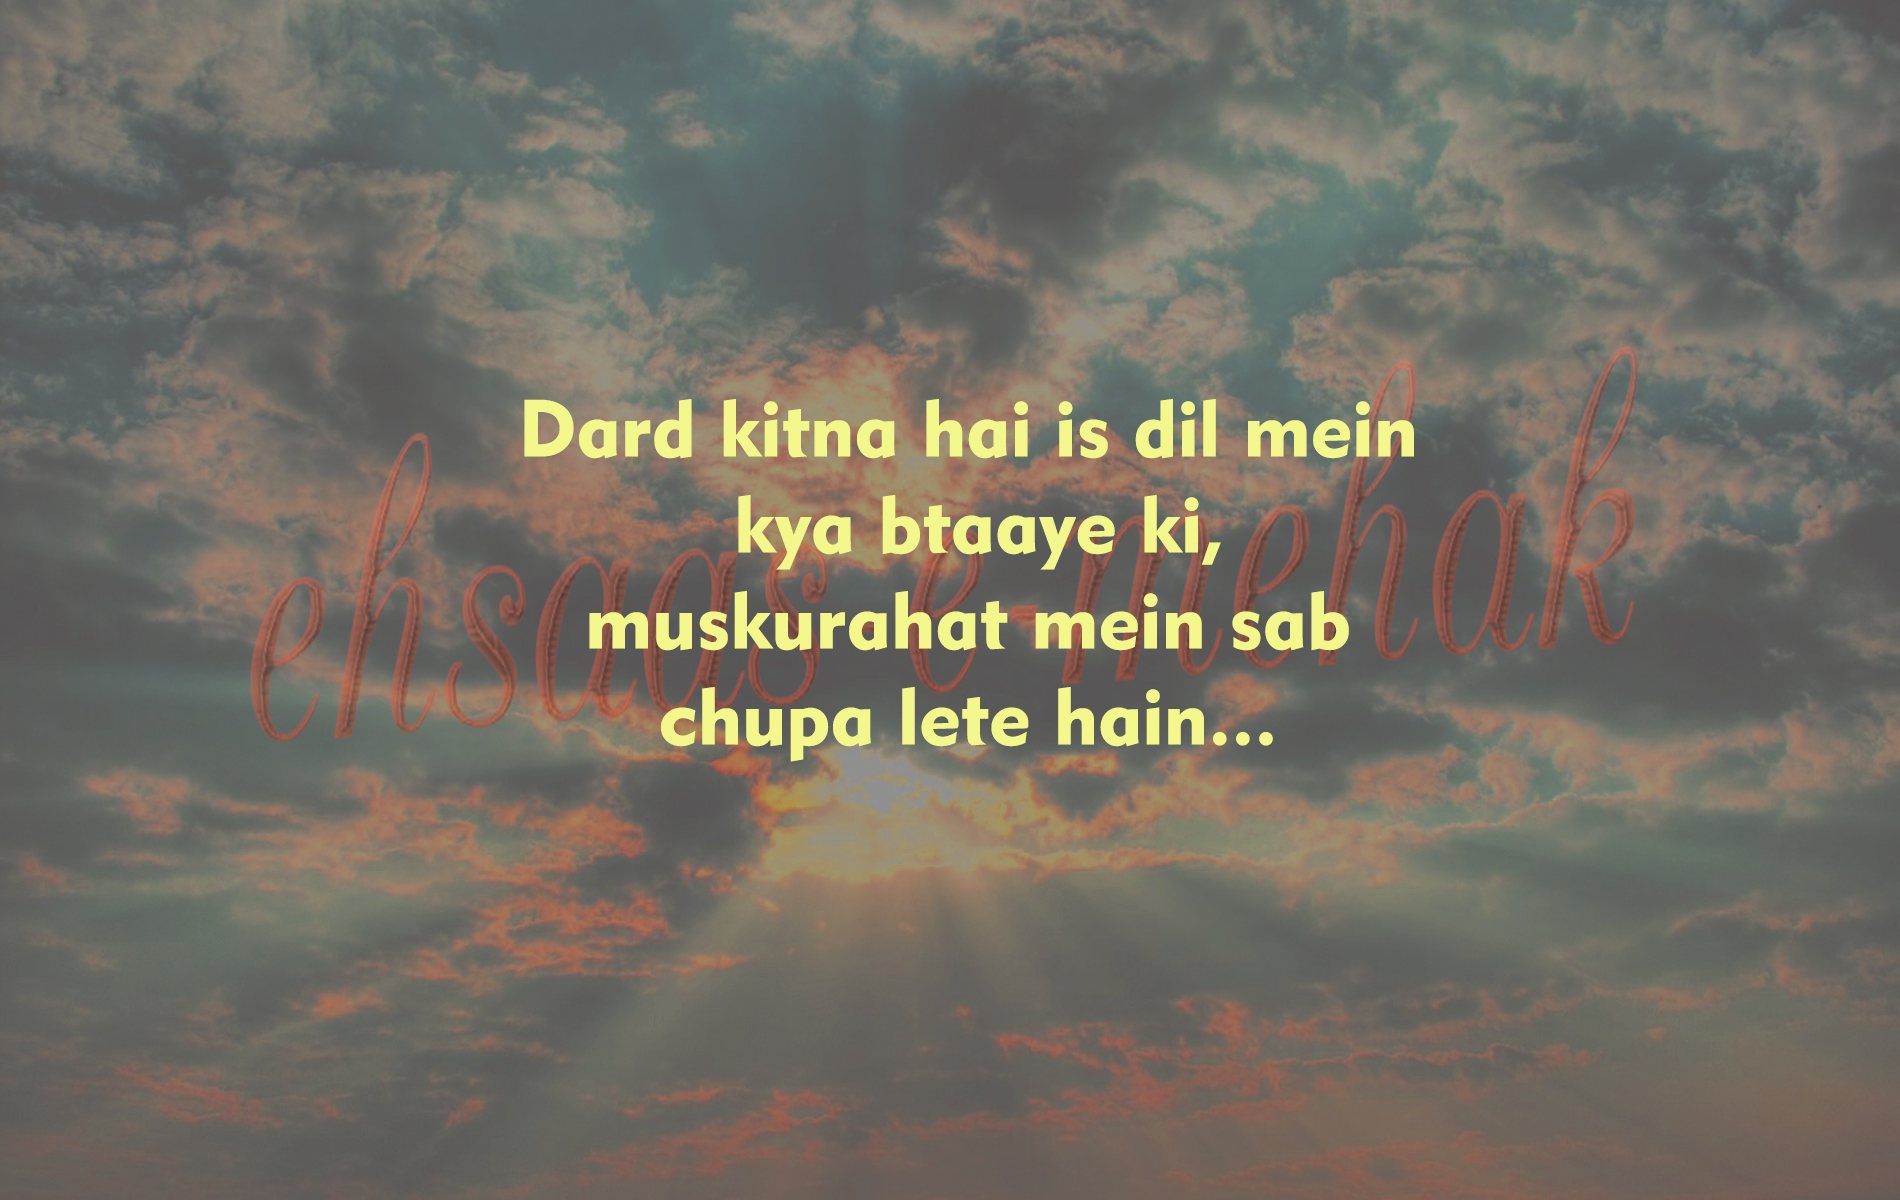 Dard kitna hai is dil mein